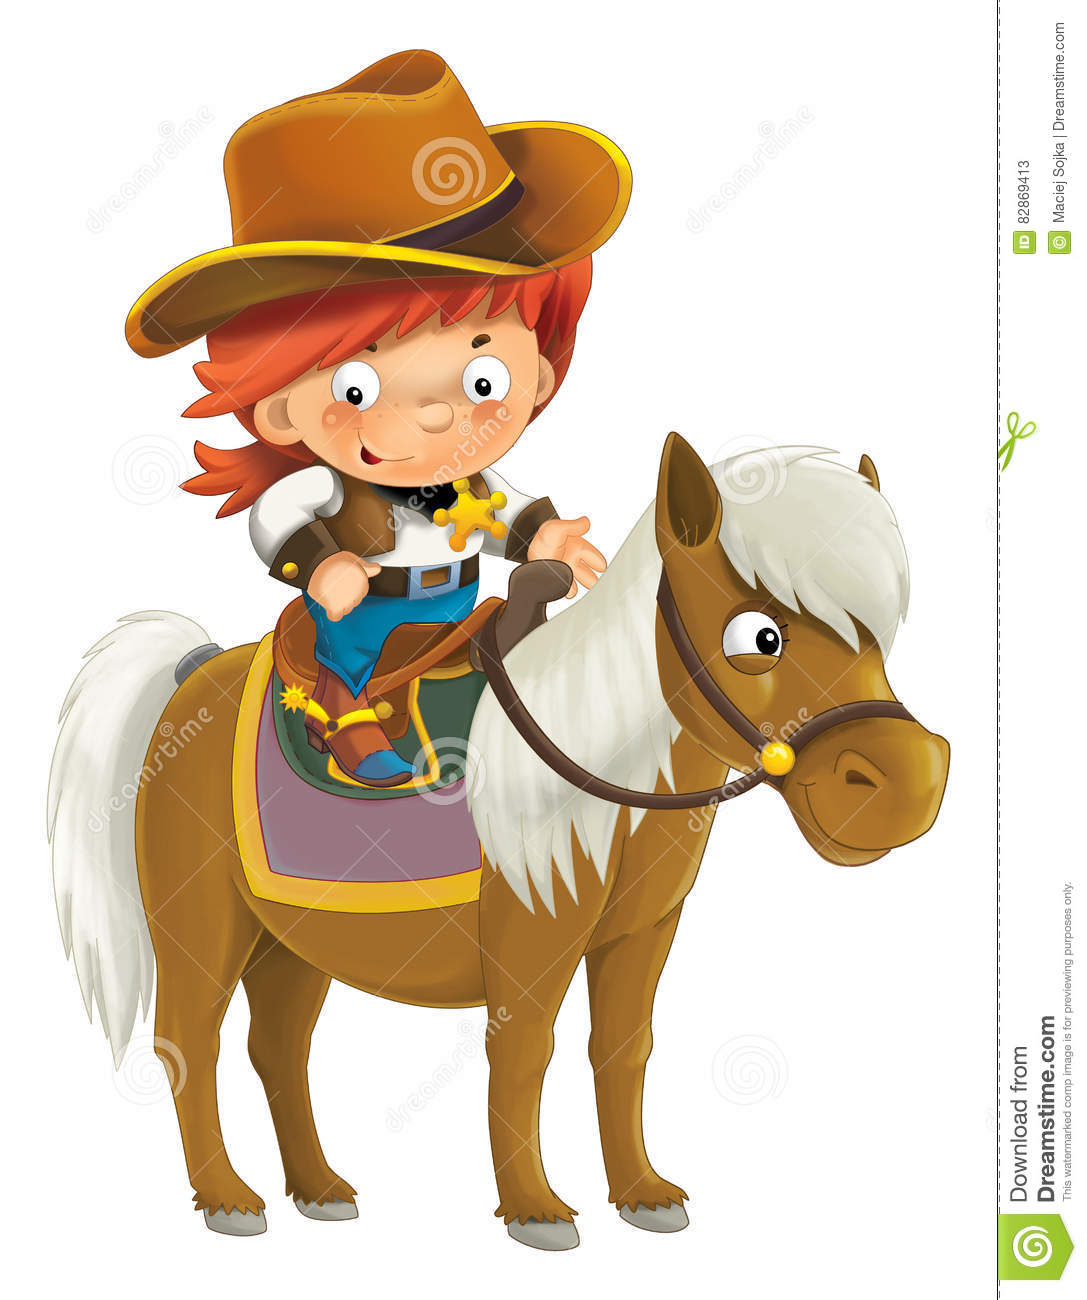 8a454e5b2 Cartoon Western Cowboy On Horse - Isolated Stock Illustration ...